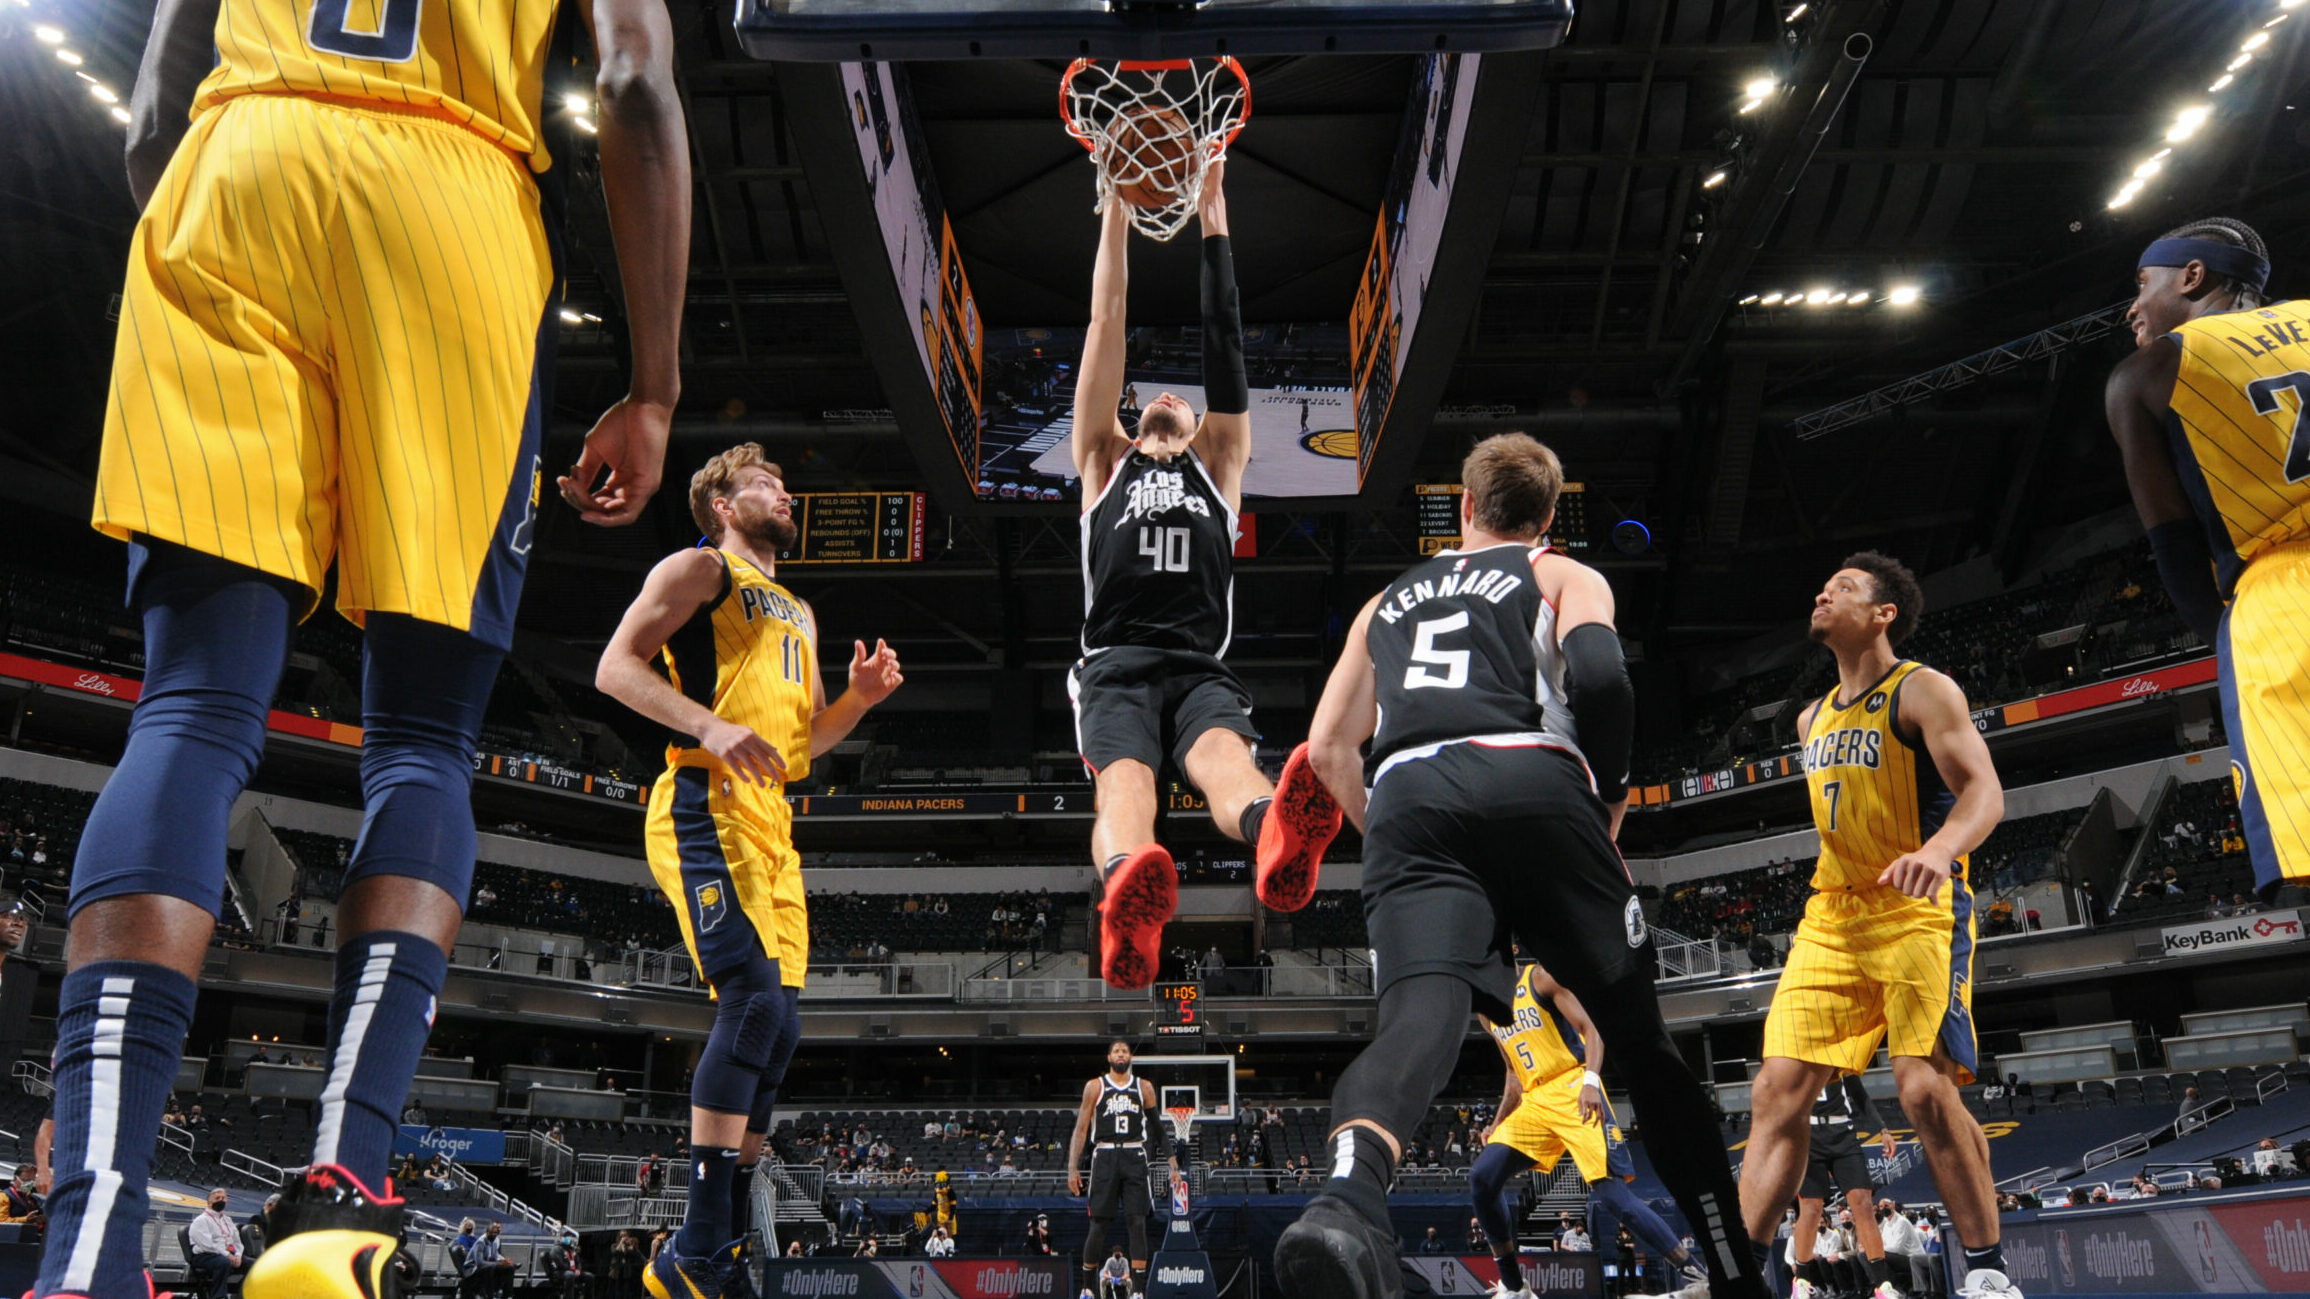 Clippers bring 5-game winning streak into Indiana